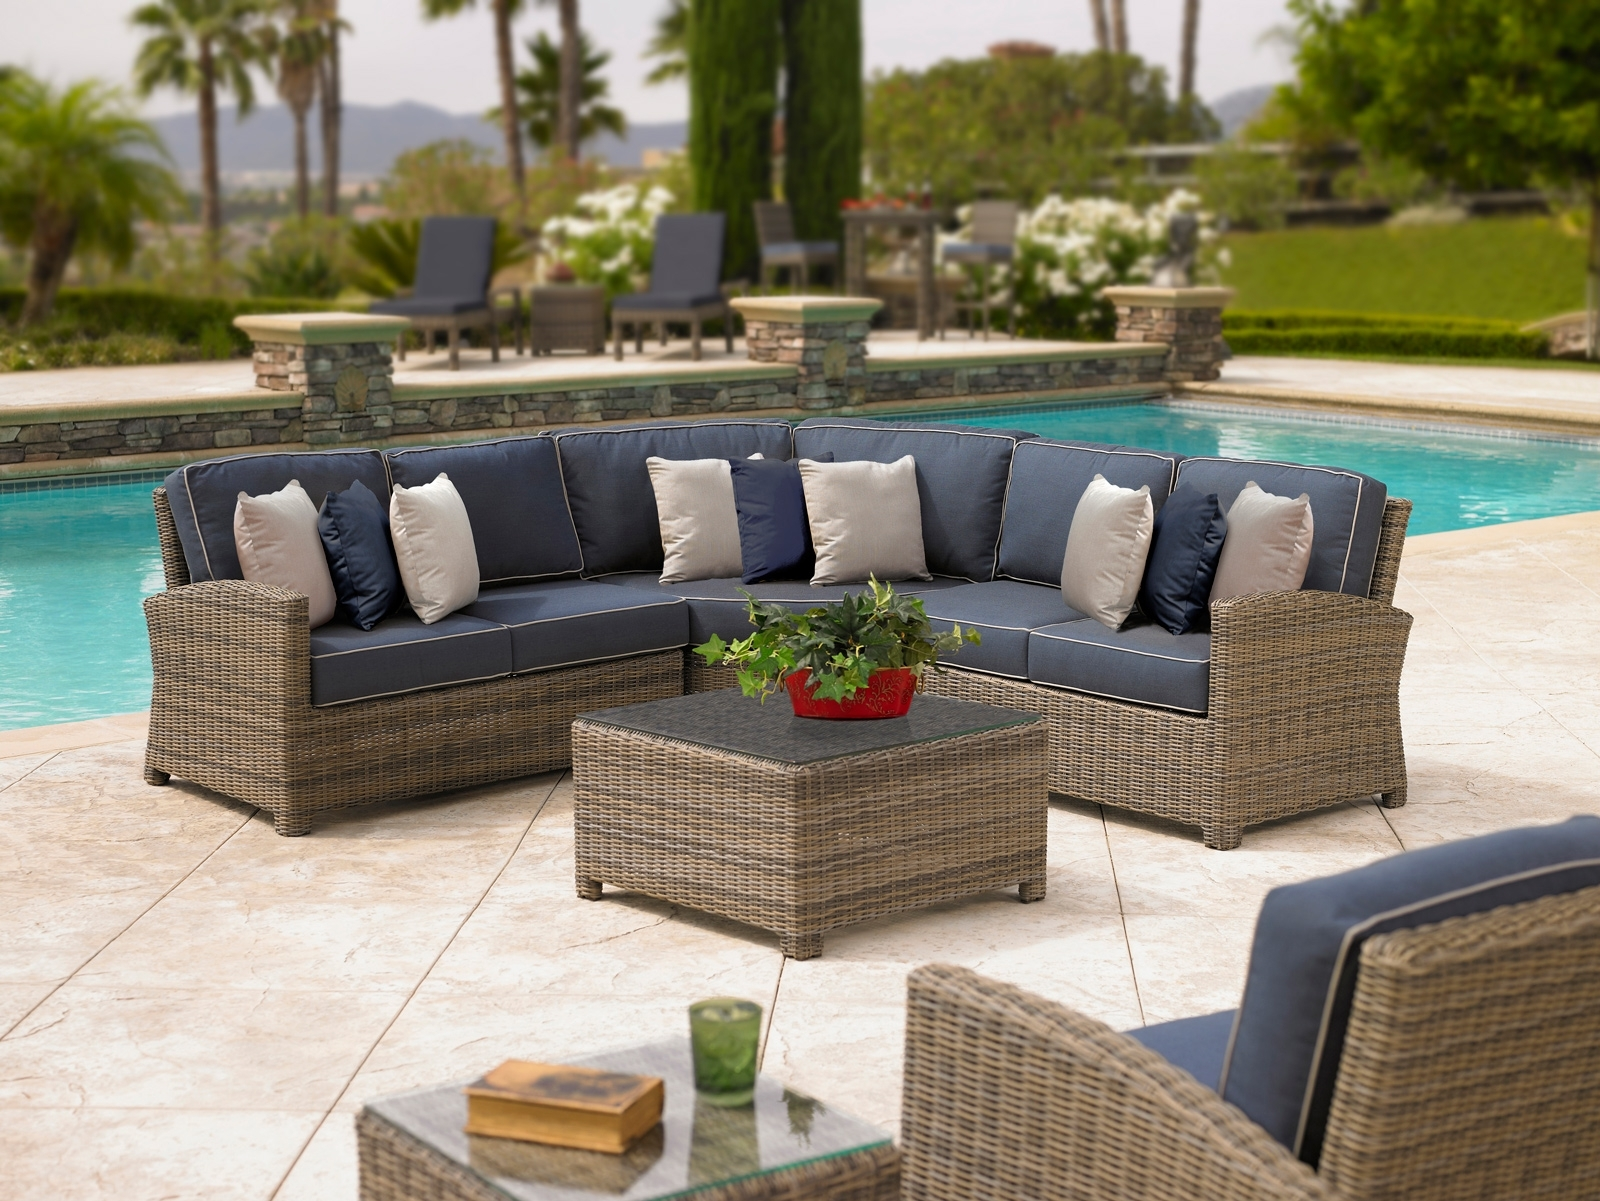 Catalina Commercial Outdoor Furniture At Low Prices Resort Inside Resort Outdoor Furniture Beautiful Resort Outdoor Furniture